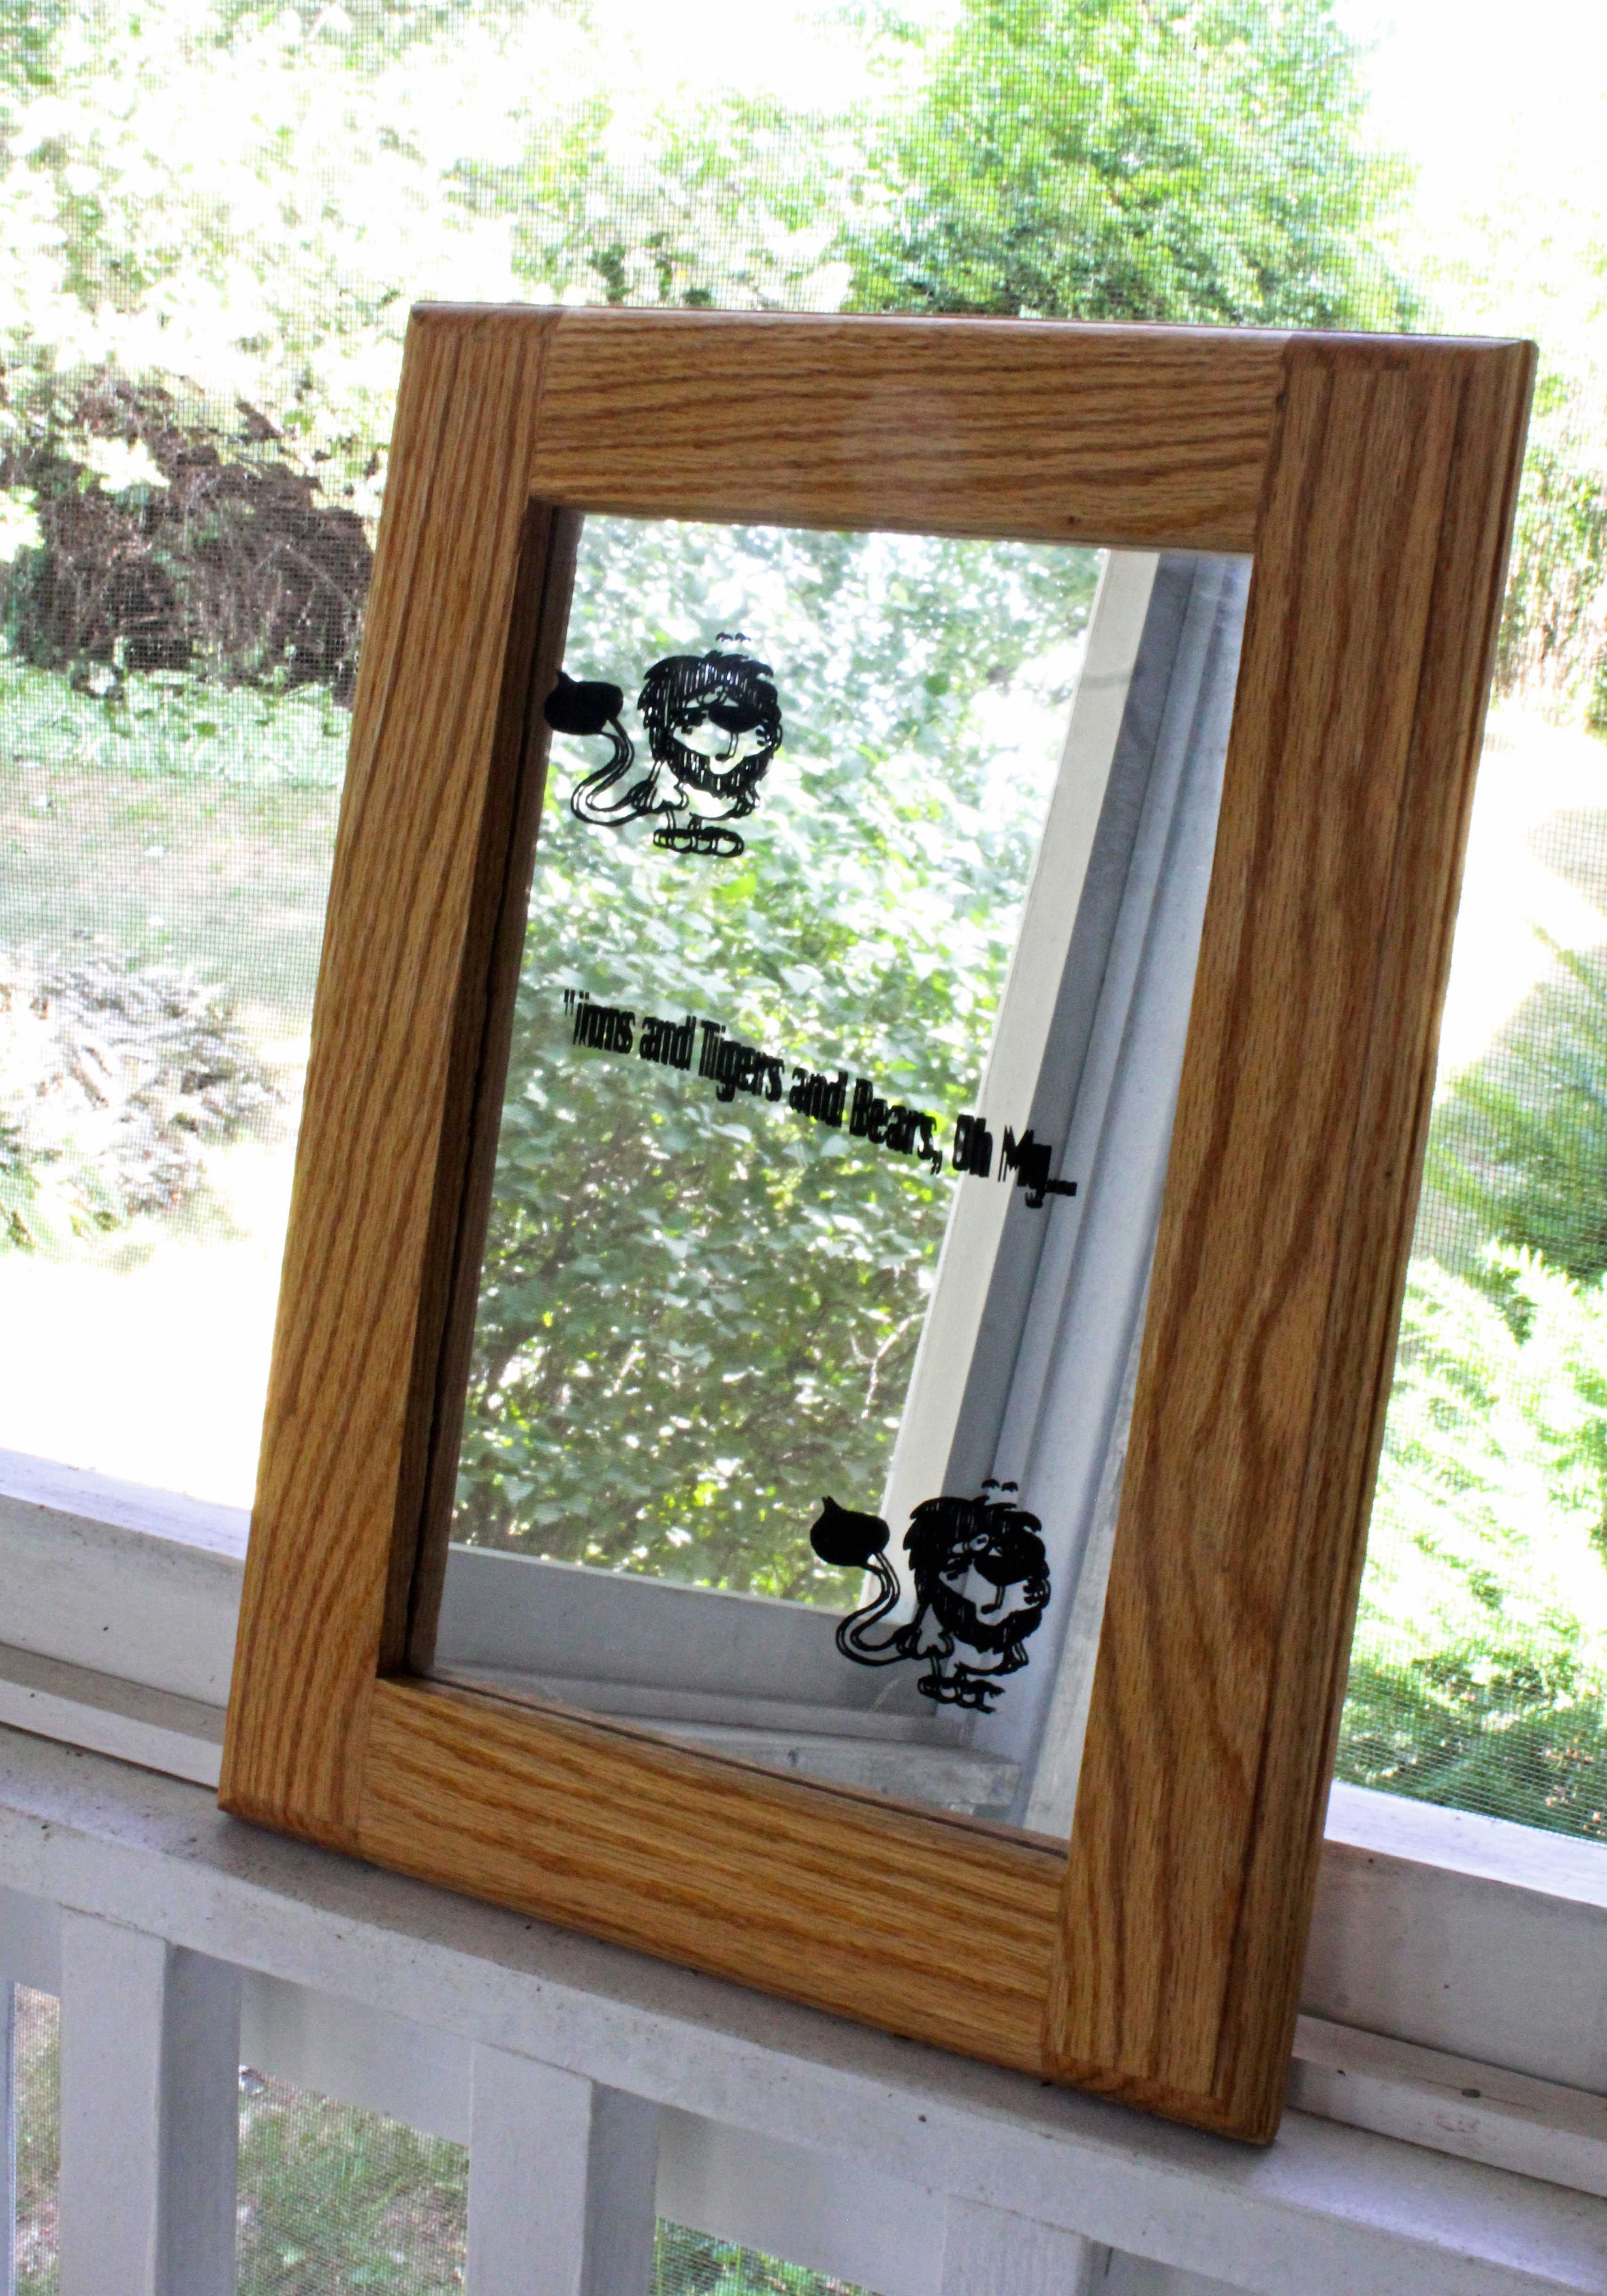 Transform a plain mirror with flowers and spray paint goodwill 2 old frame jeuxipadfo Choice Image